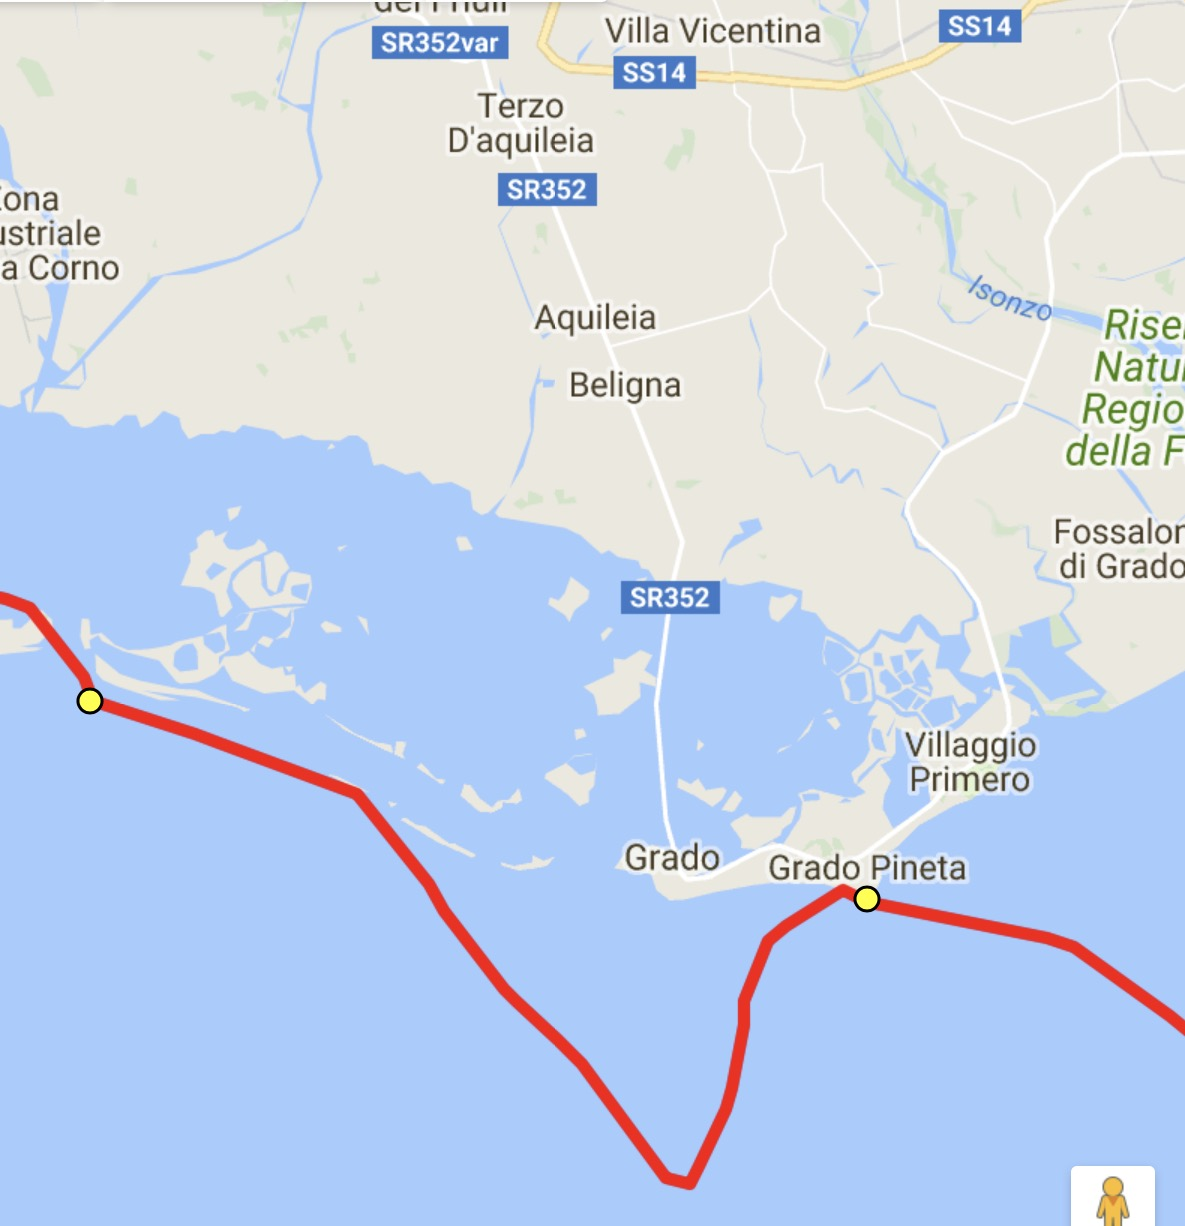 It took us two hours from where we turned to reach Grado Pineta. That was a hard, hard paddle.